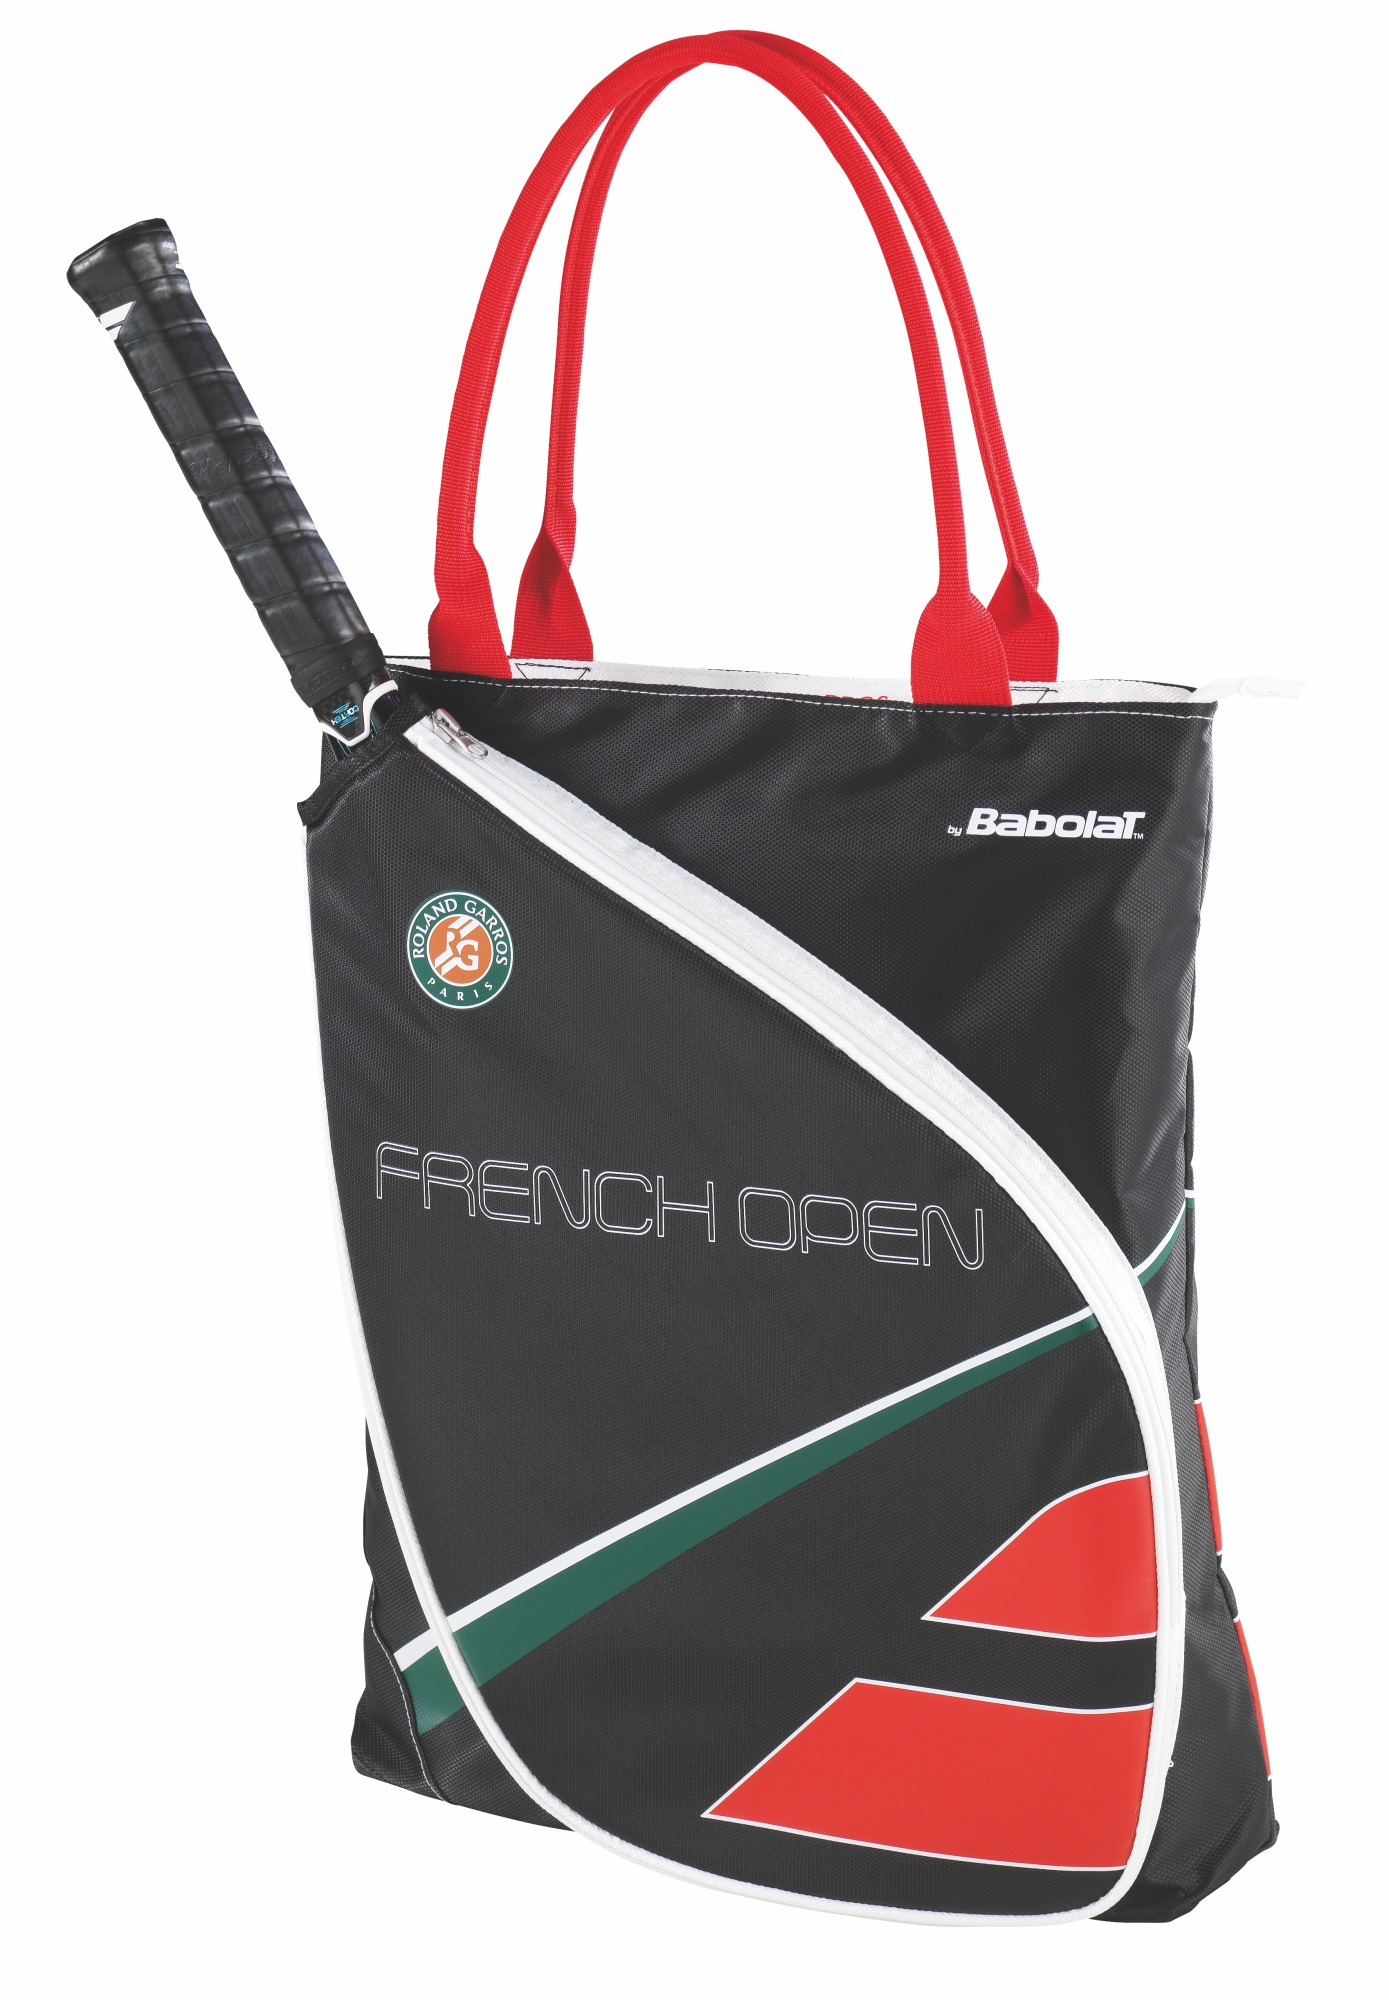 Babolat Tote Bag French Open 2015